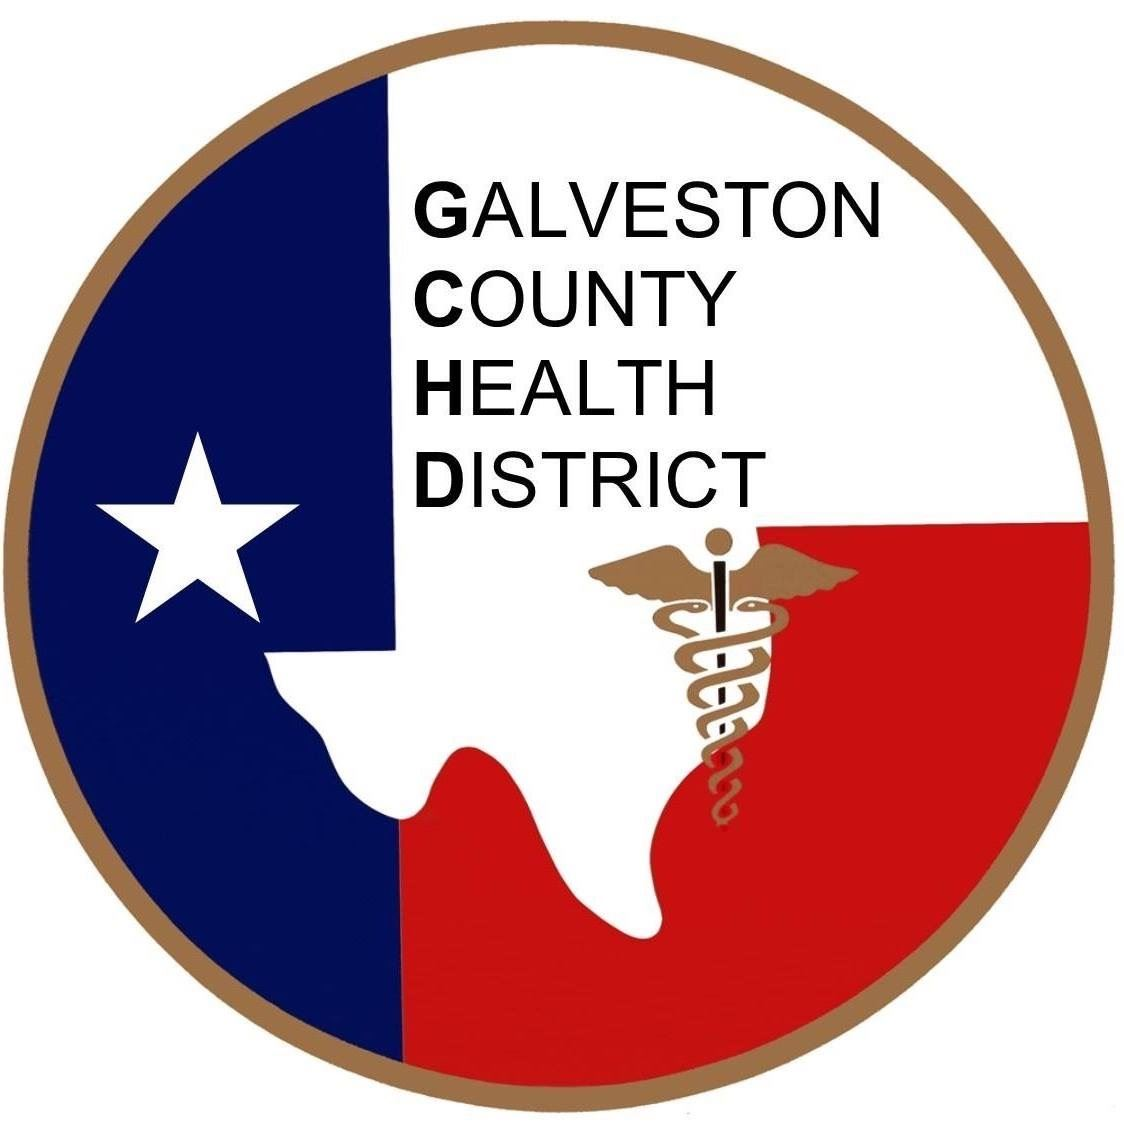 Galveston County Health District logo